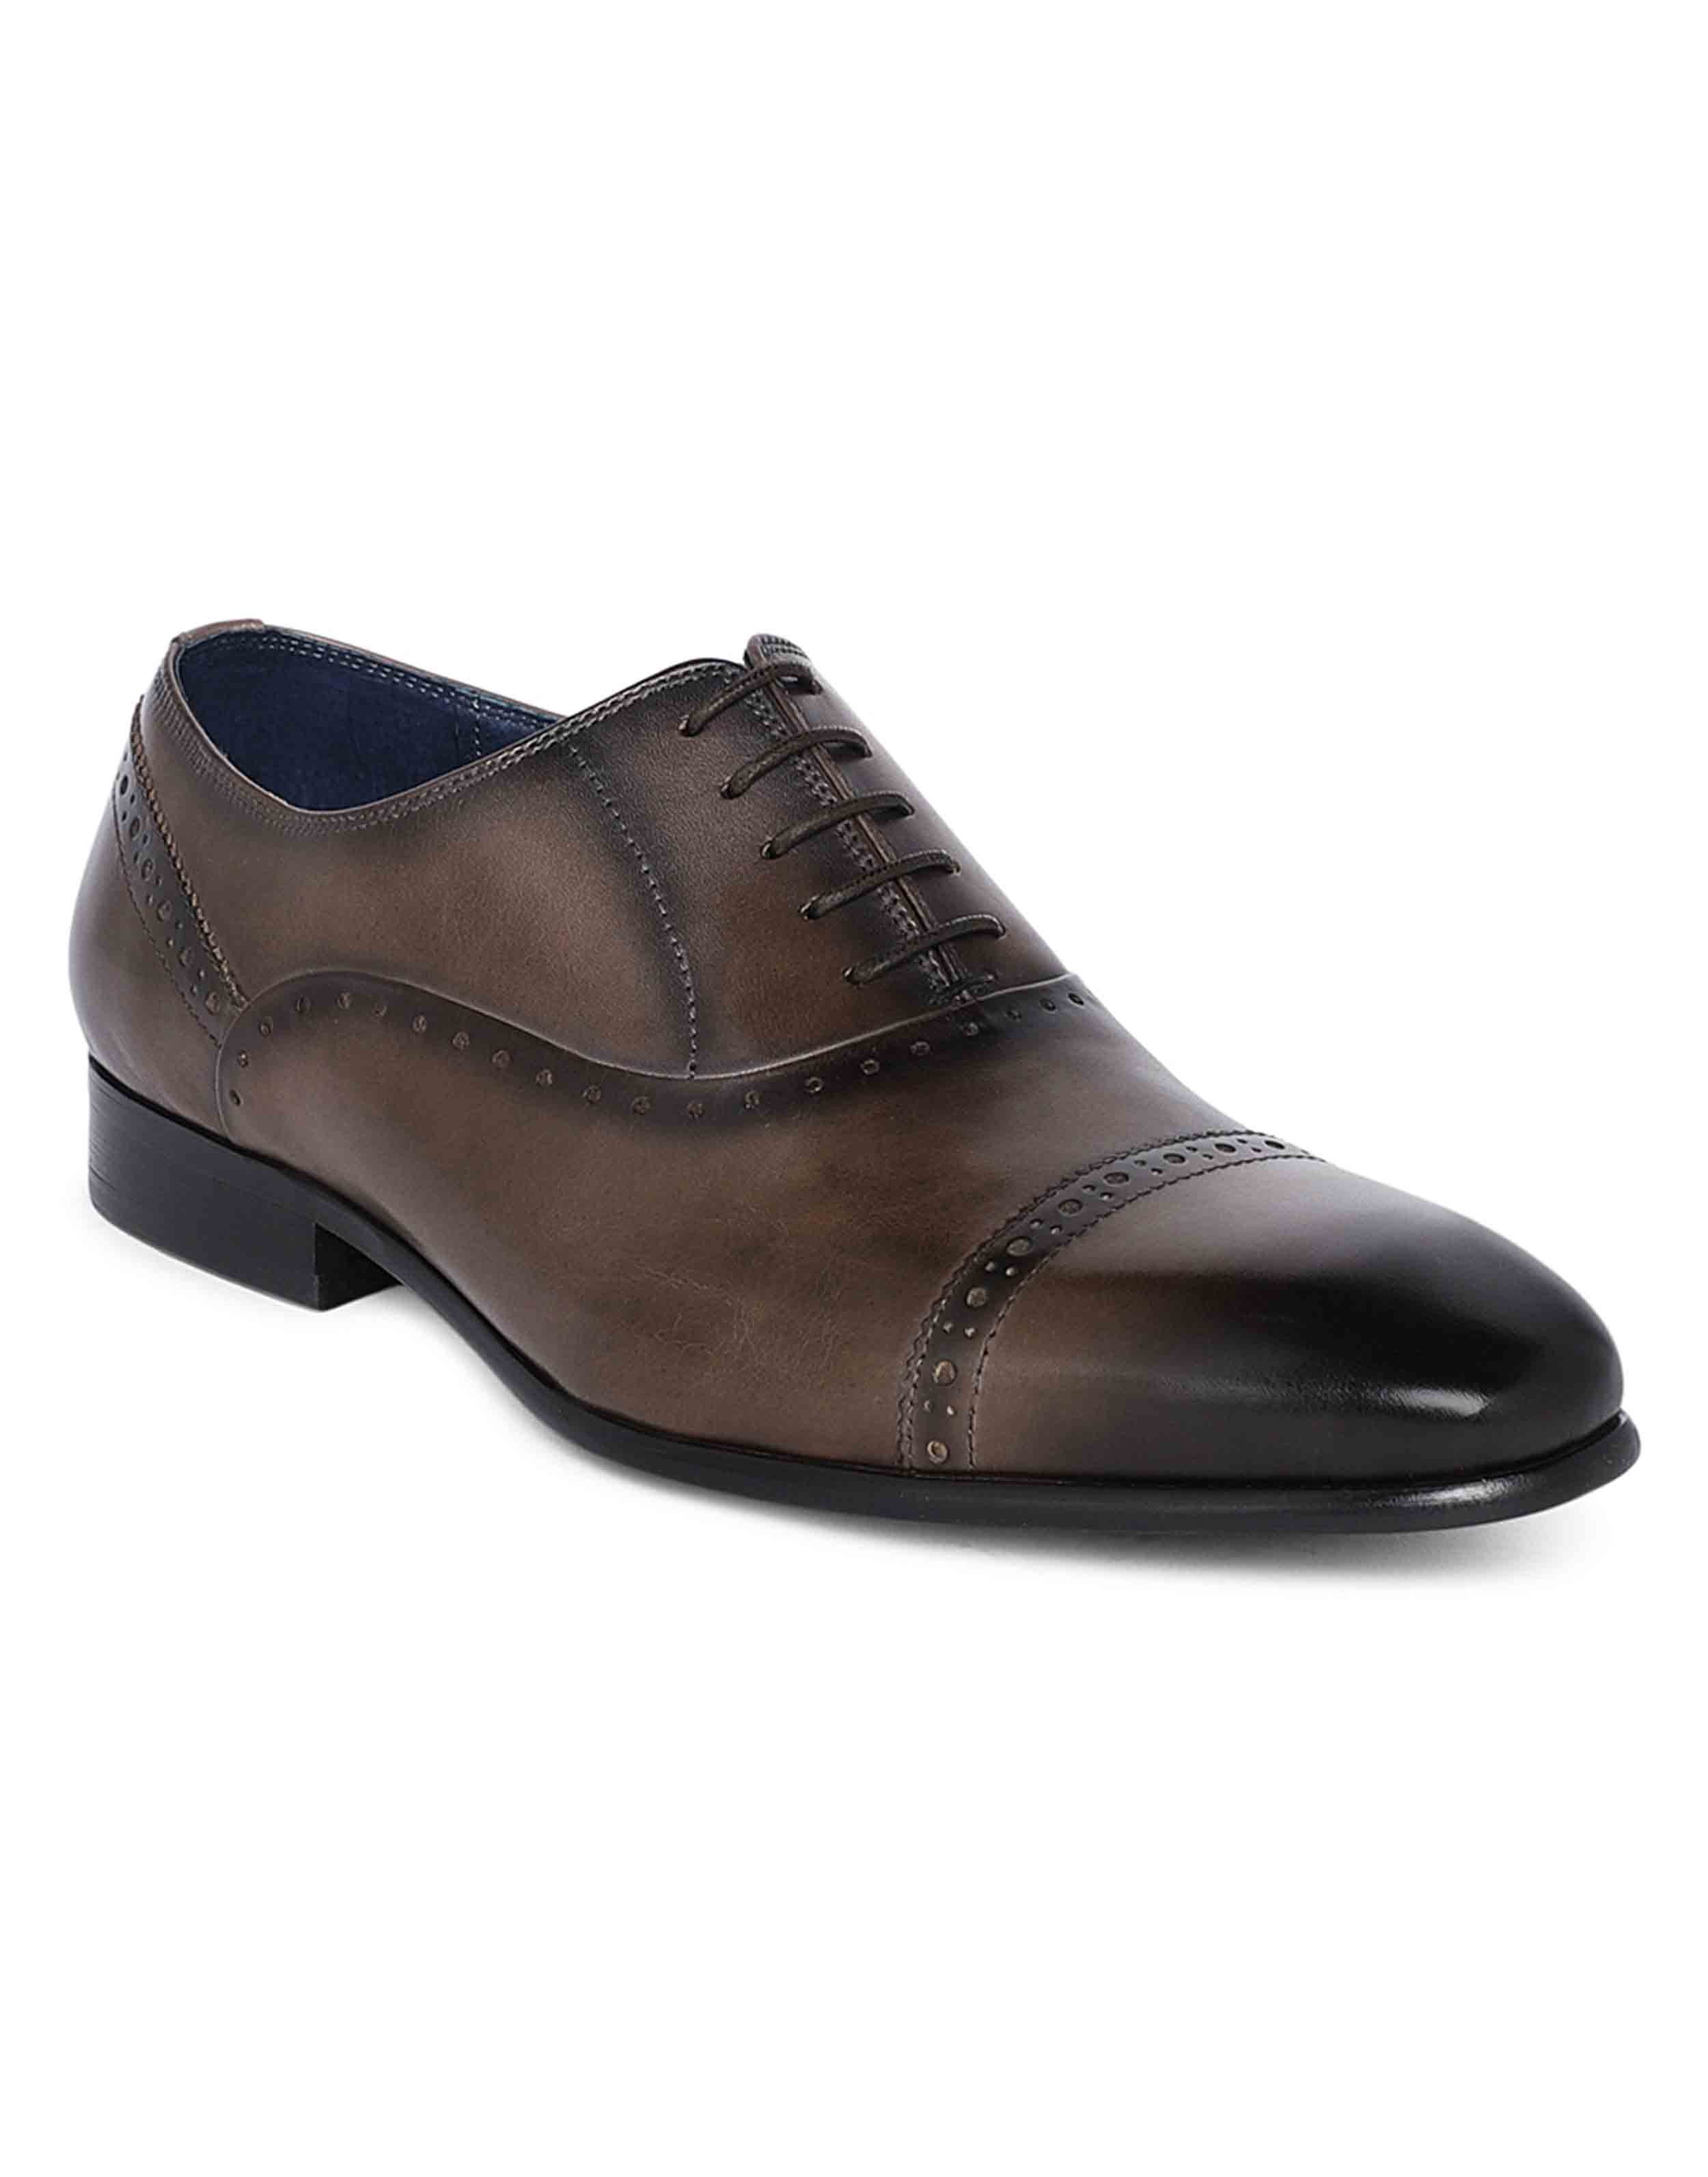 Grey medallion wingtip oxfords2